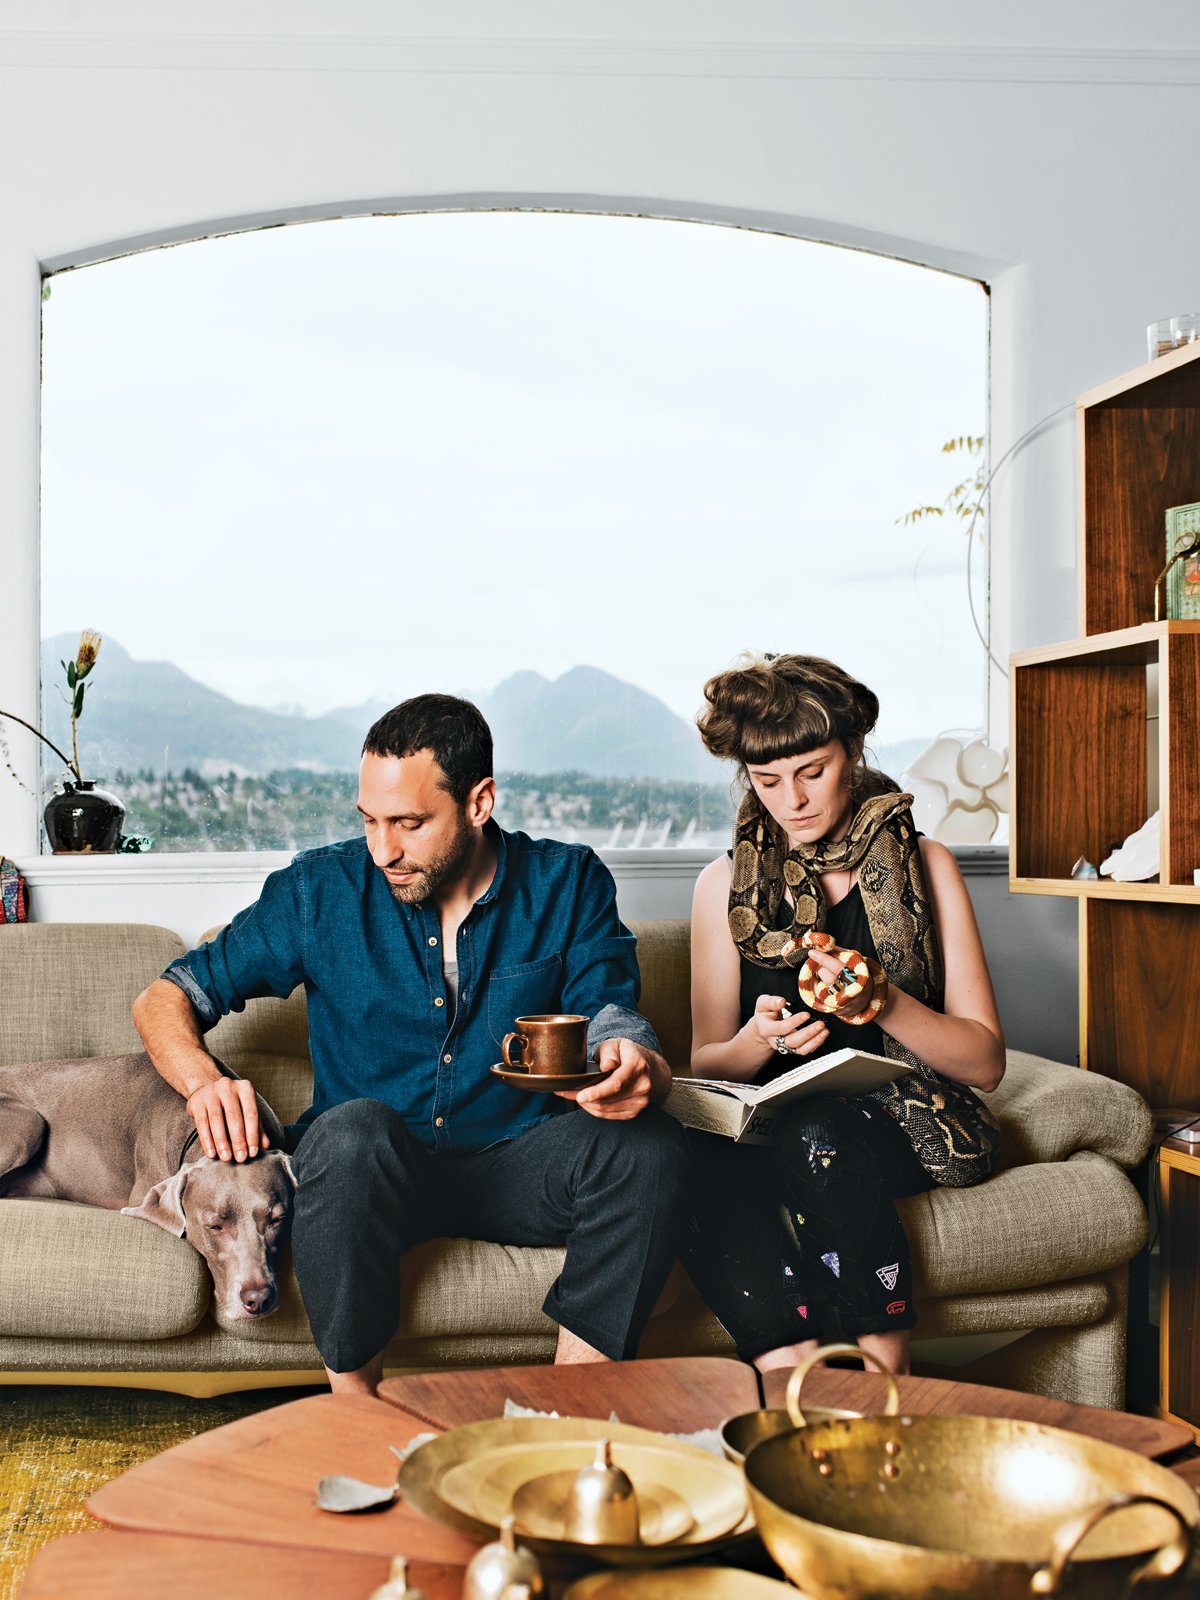 """In the living room of their Vancouver home, Omer Arbel and Aileen Bryant sit on a Coronado sofa by Afra and Tobia Scarpa for B&B Italia. They are joined by their Weimaraner, Bowie, boa constrictor, Picasso, and milk snake, Legs.  """"I have a casual approach to prototyping that involves our day-to-day life. I am always tinkering, and I have lots of transformers to run electricity through things, but Aileen lives with me now, so I have to be respectful. Before she moved in it was like a total madhouse; now I can't pour concrete in the kitchen. It is a collaboration in a sentimental sense. This work is my life, and the objects are my objects, but how they are arranged and the flow of each room are something we've created together here."""""""